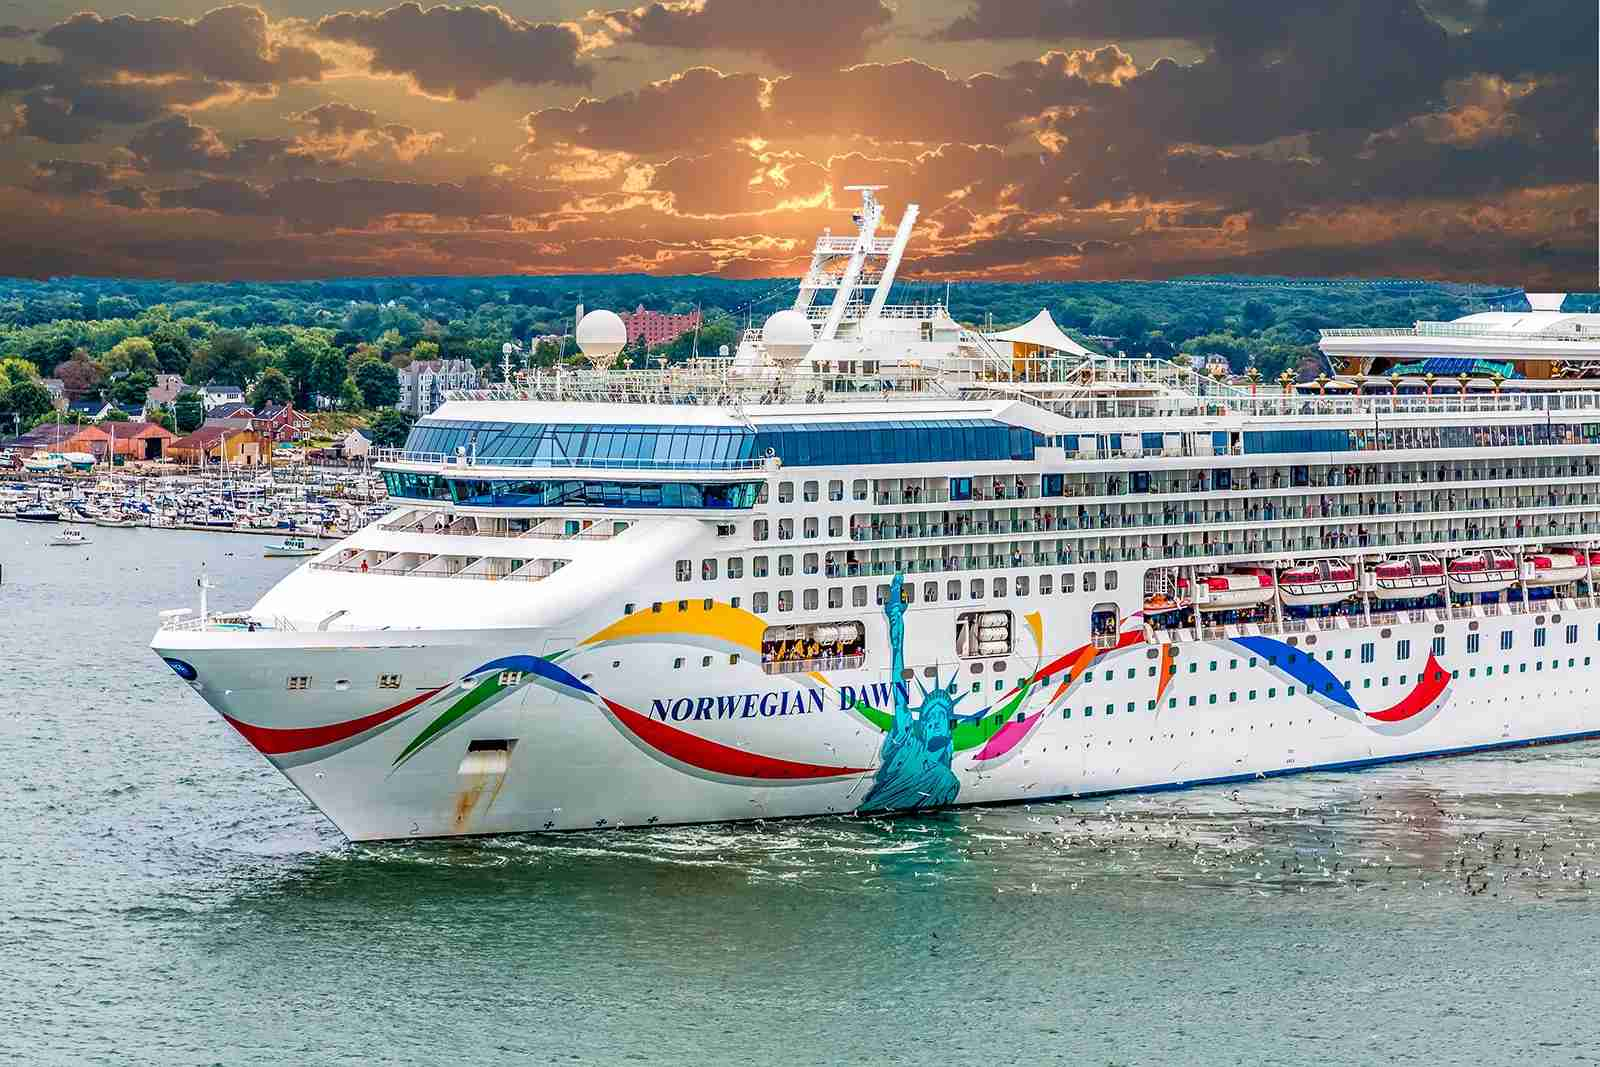 Norwegian Dawn cruise ship. (Photo by Shutterstock)